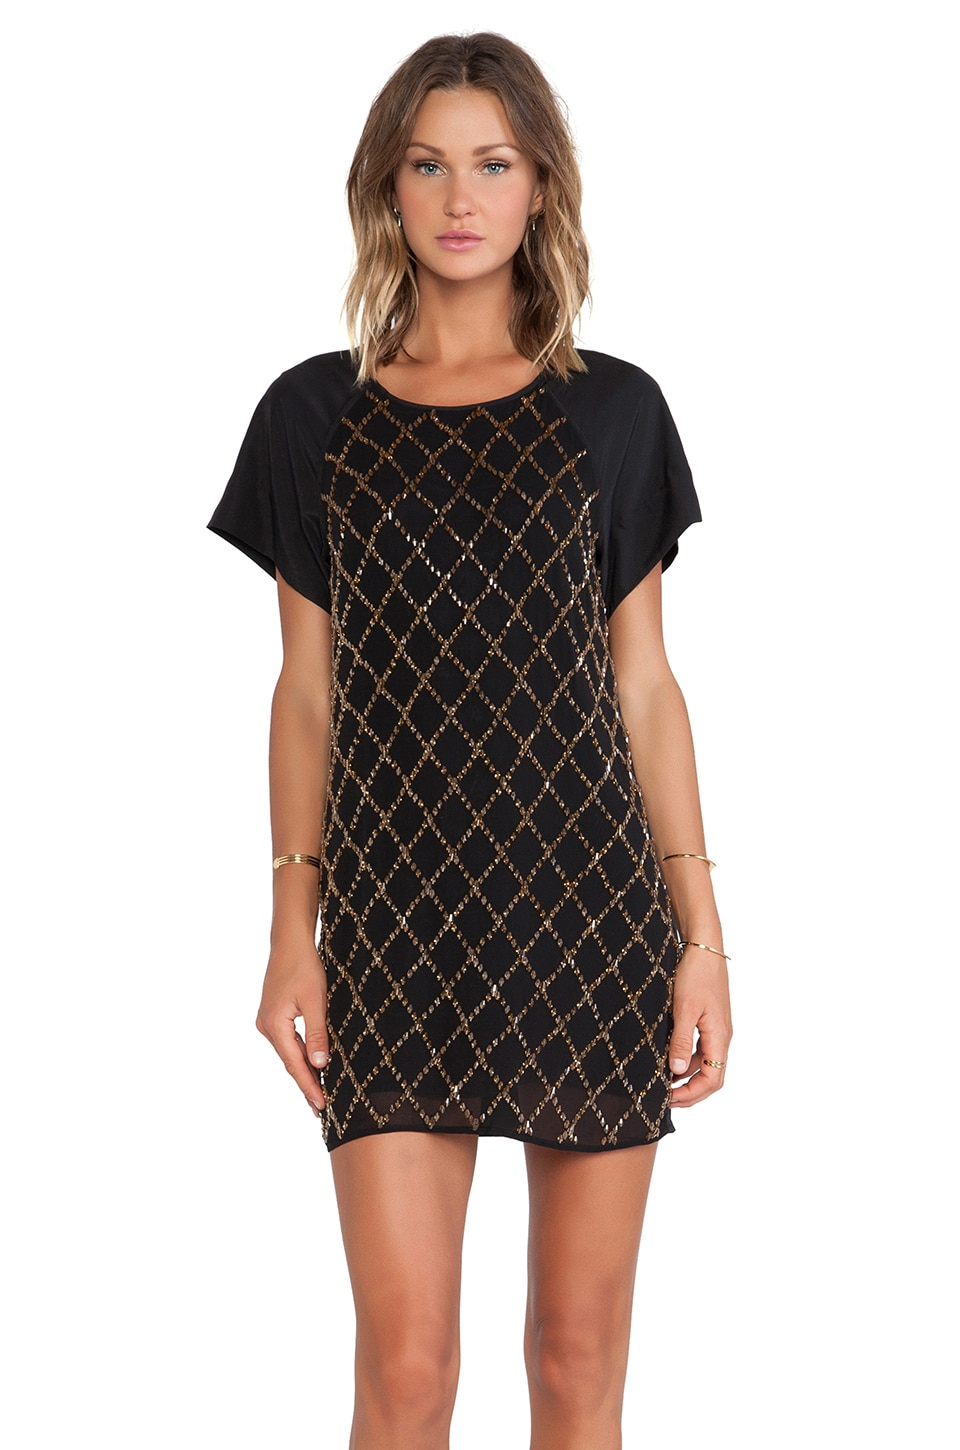 keepsake Little Talk Dress in Black & Gold